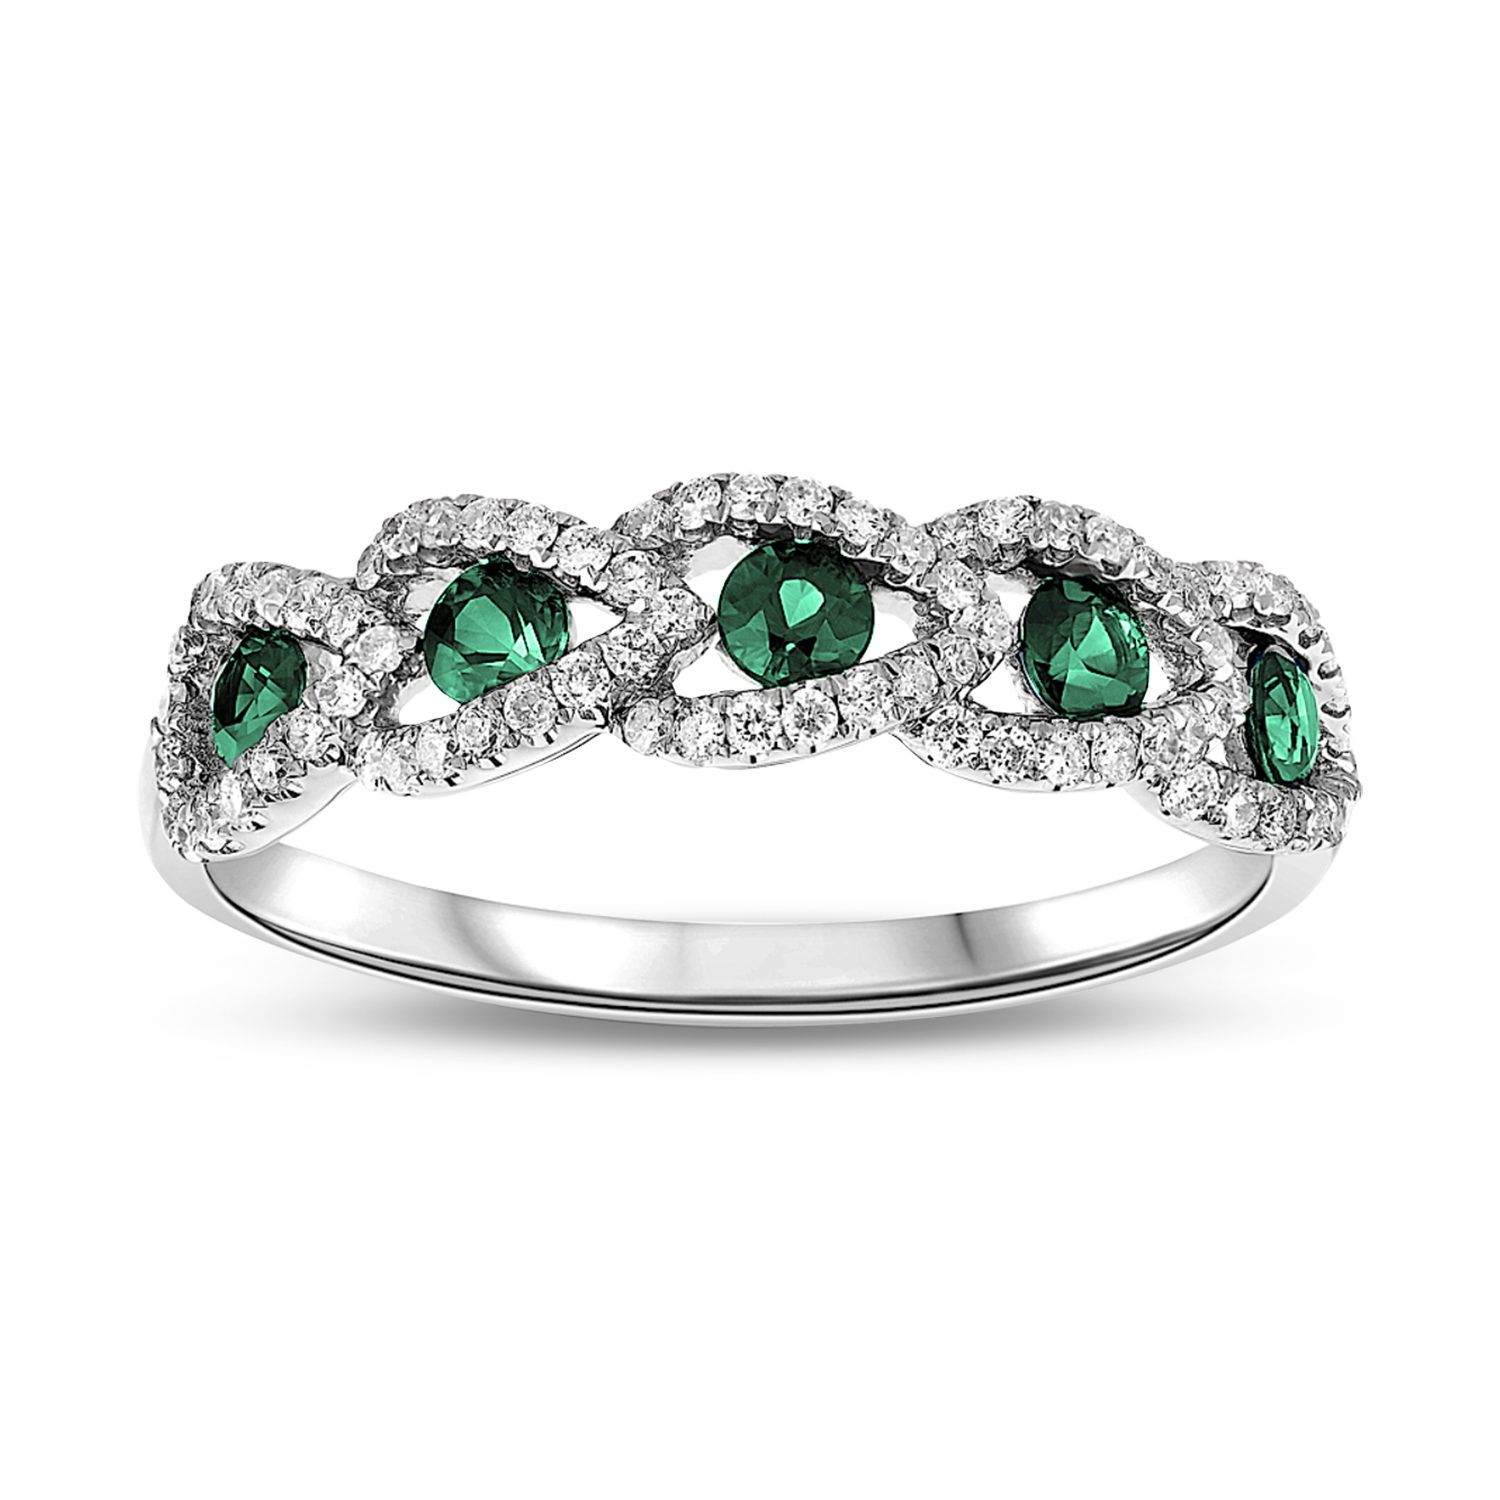 View 0.20ctw Diamond and Emerald Wedding Band in 18k Gold